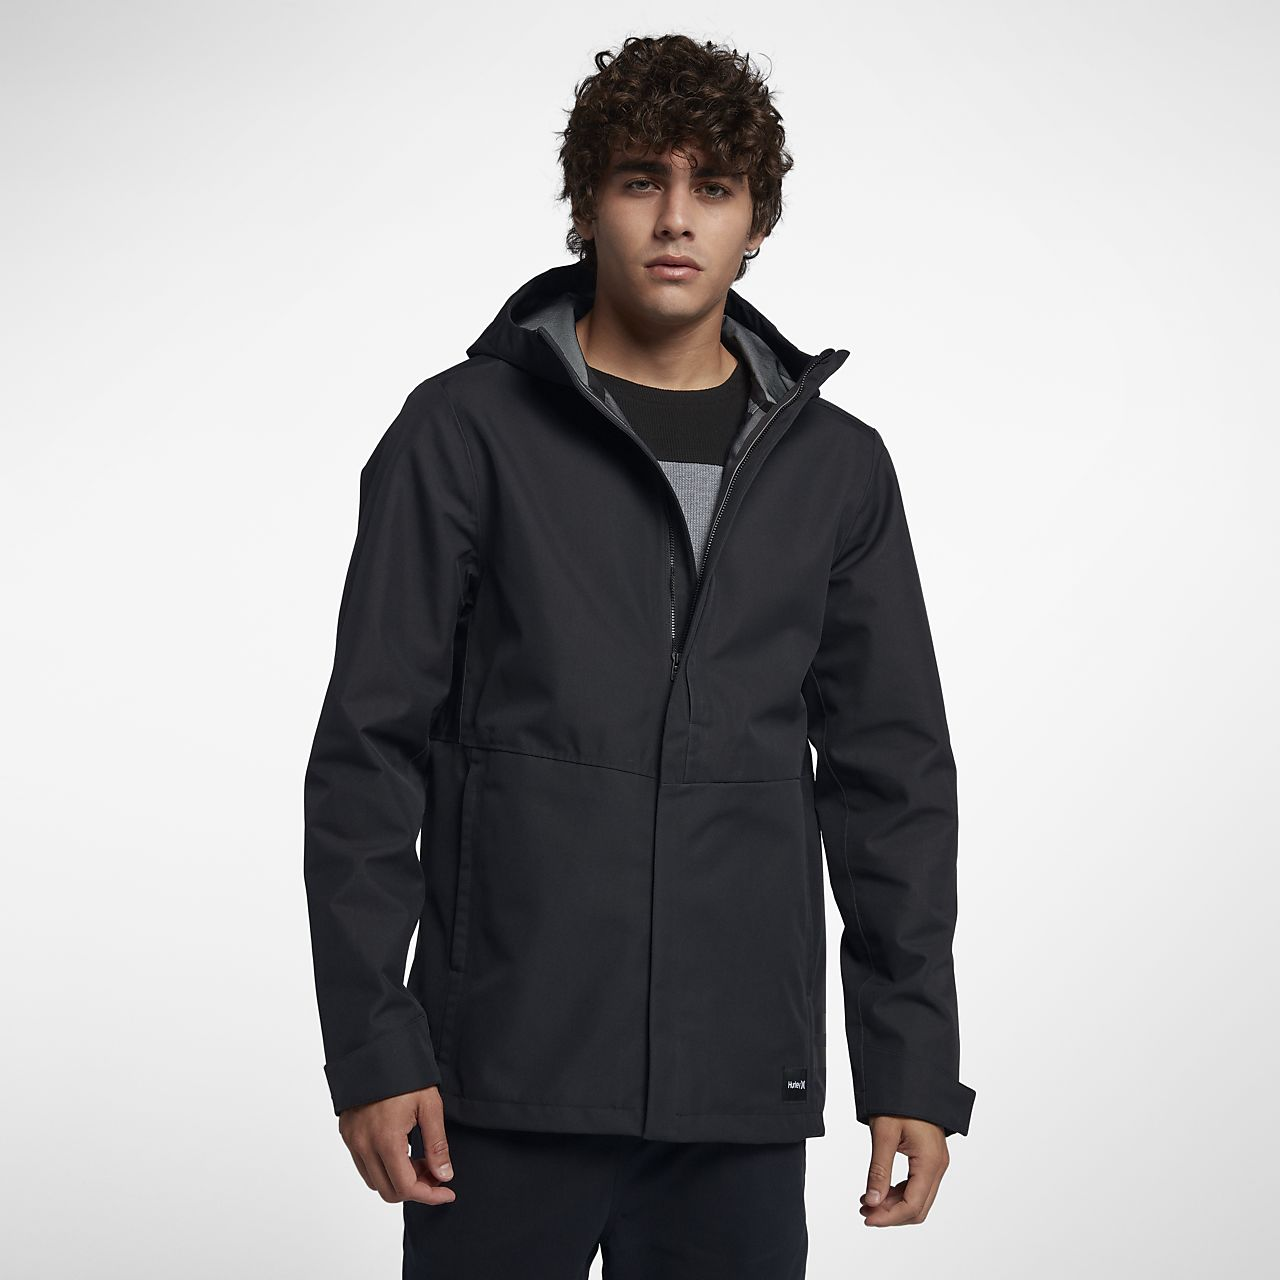 Hurley Outrider 3-Layer Shell  Men's Hooded Jacket